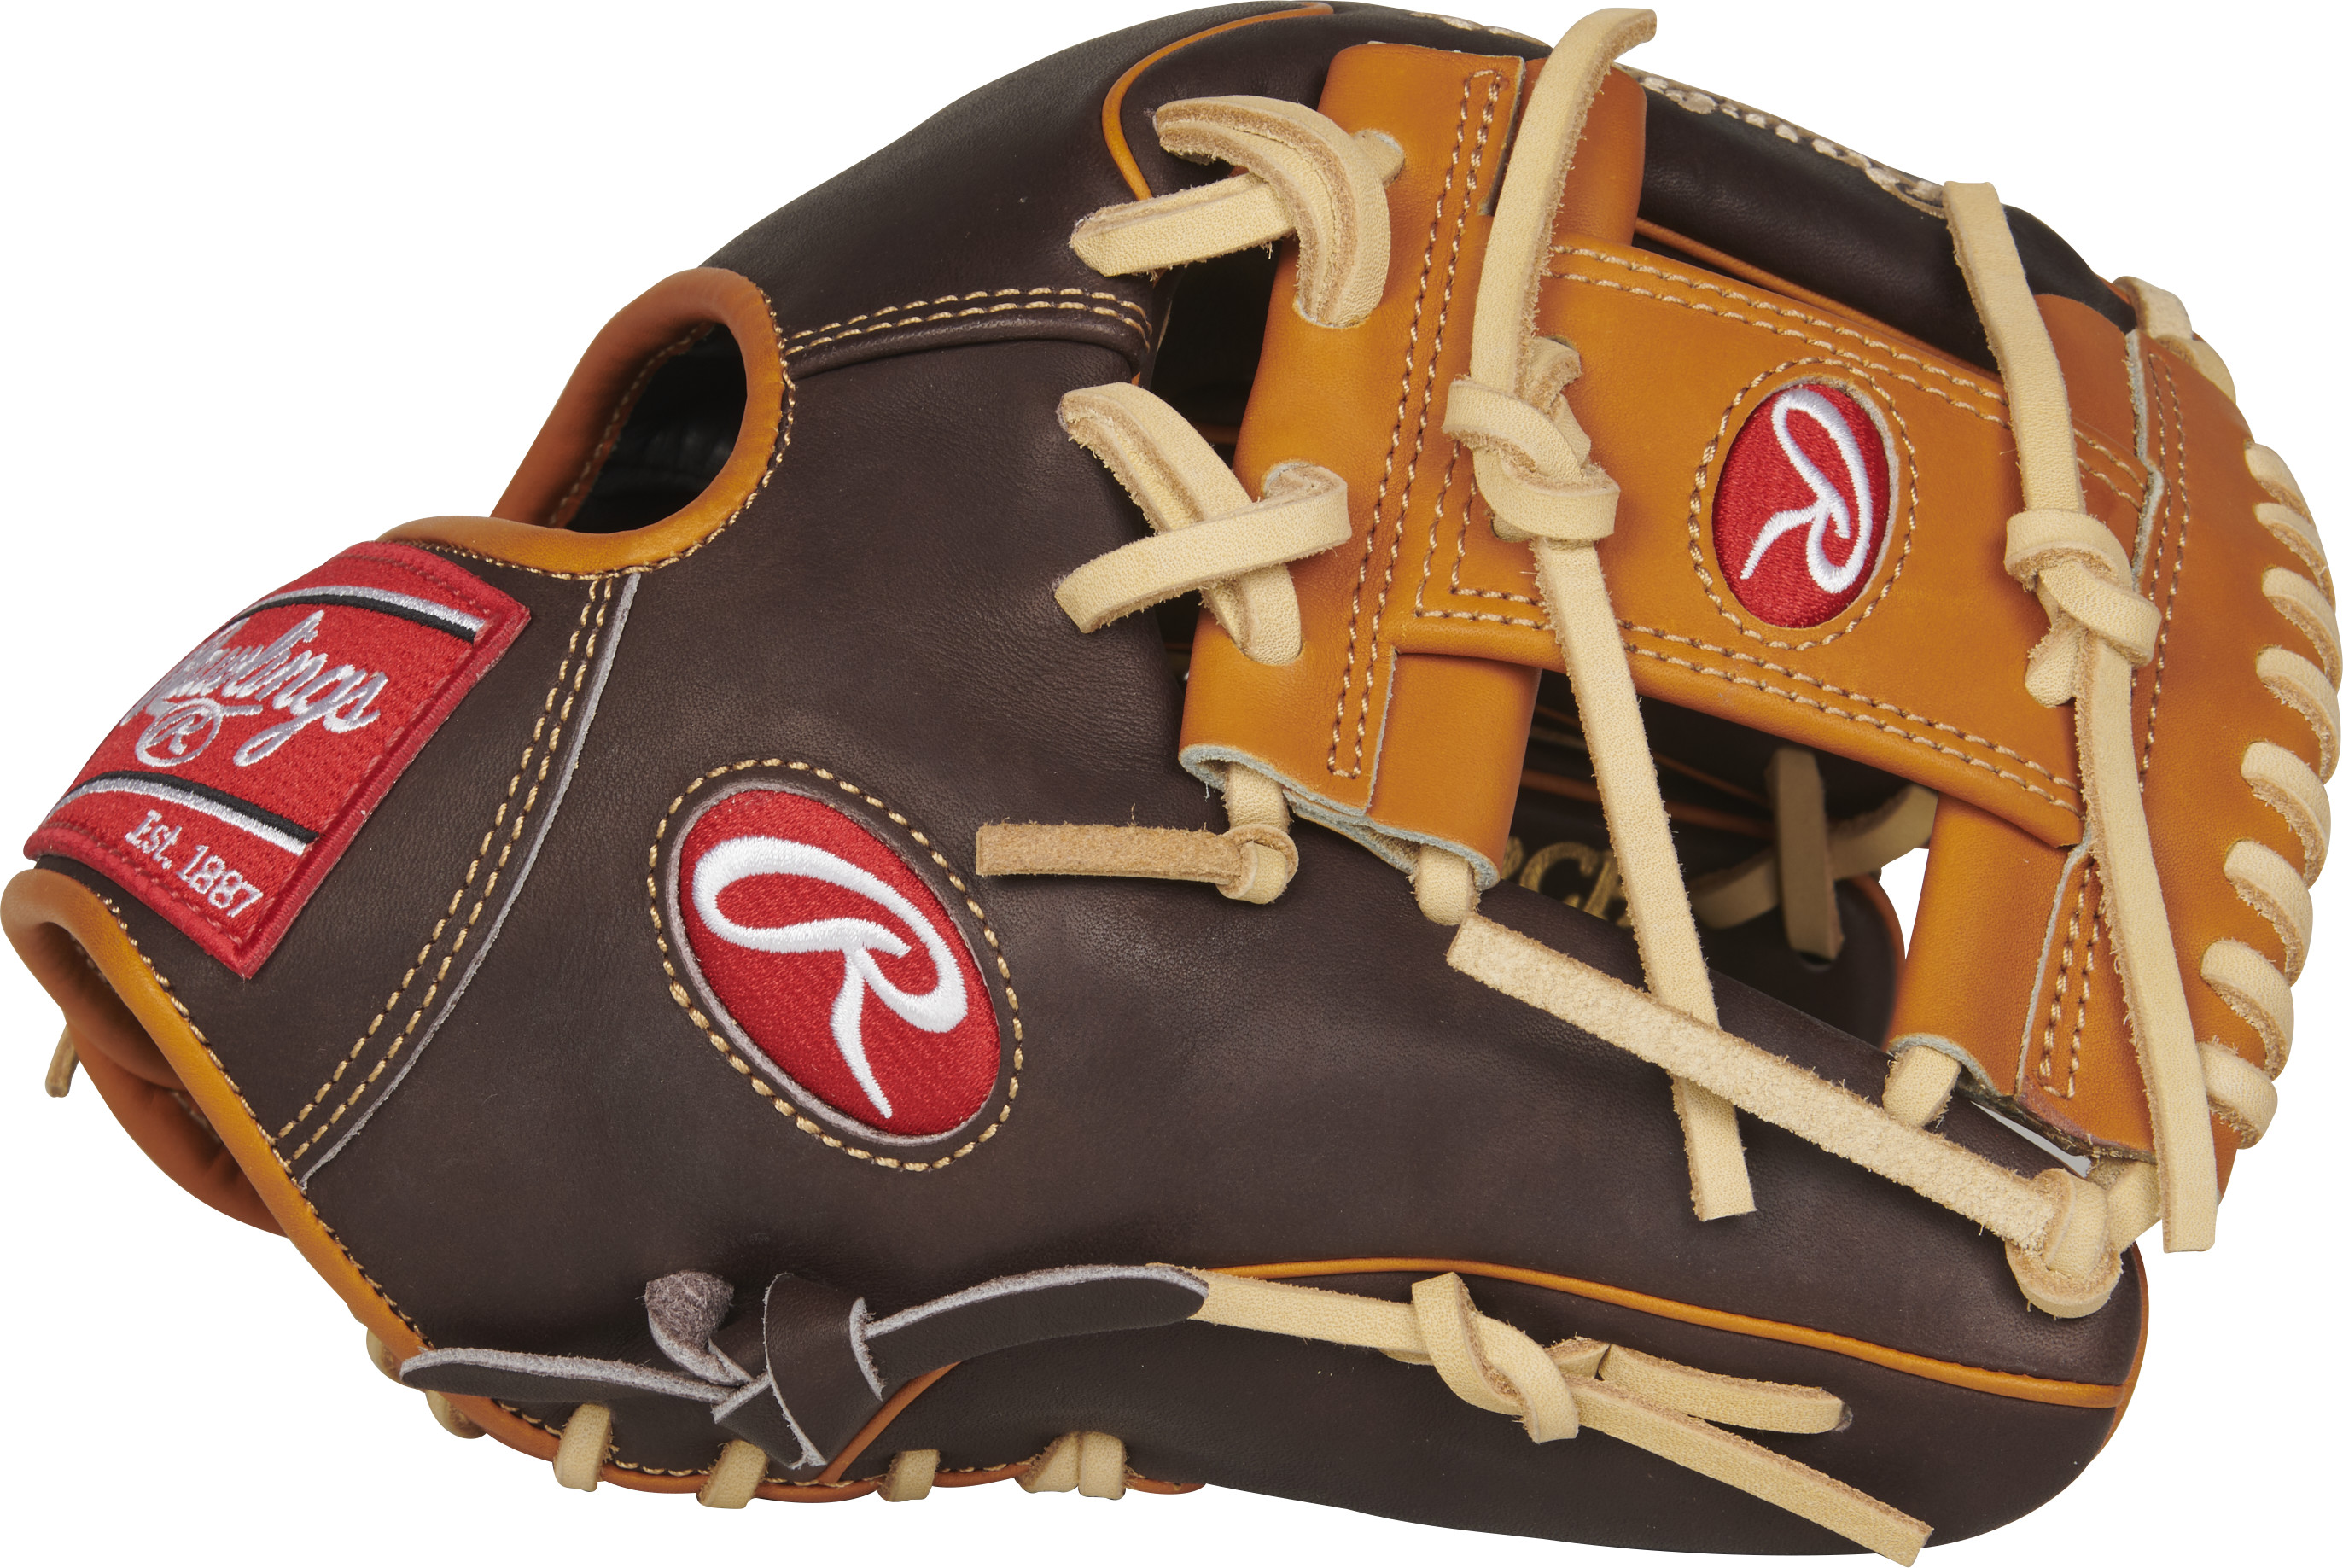 http://www.bestbatdeals.com/images/gloves/rawlings/PRO205W-2CH-3.jpg